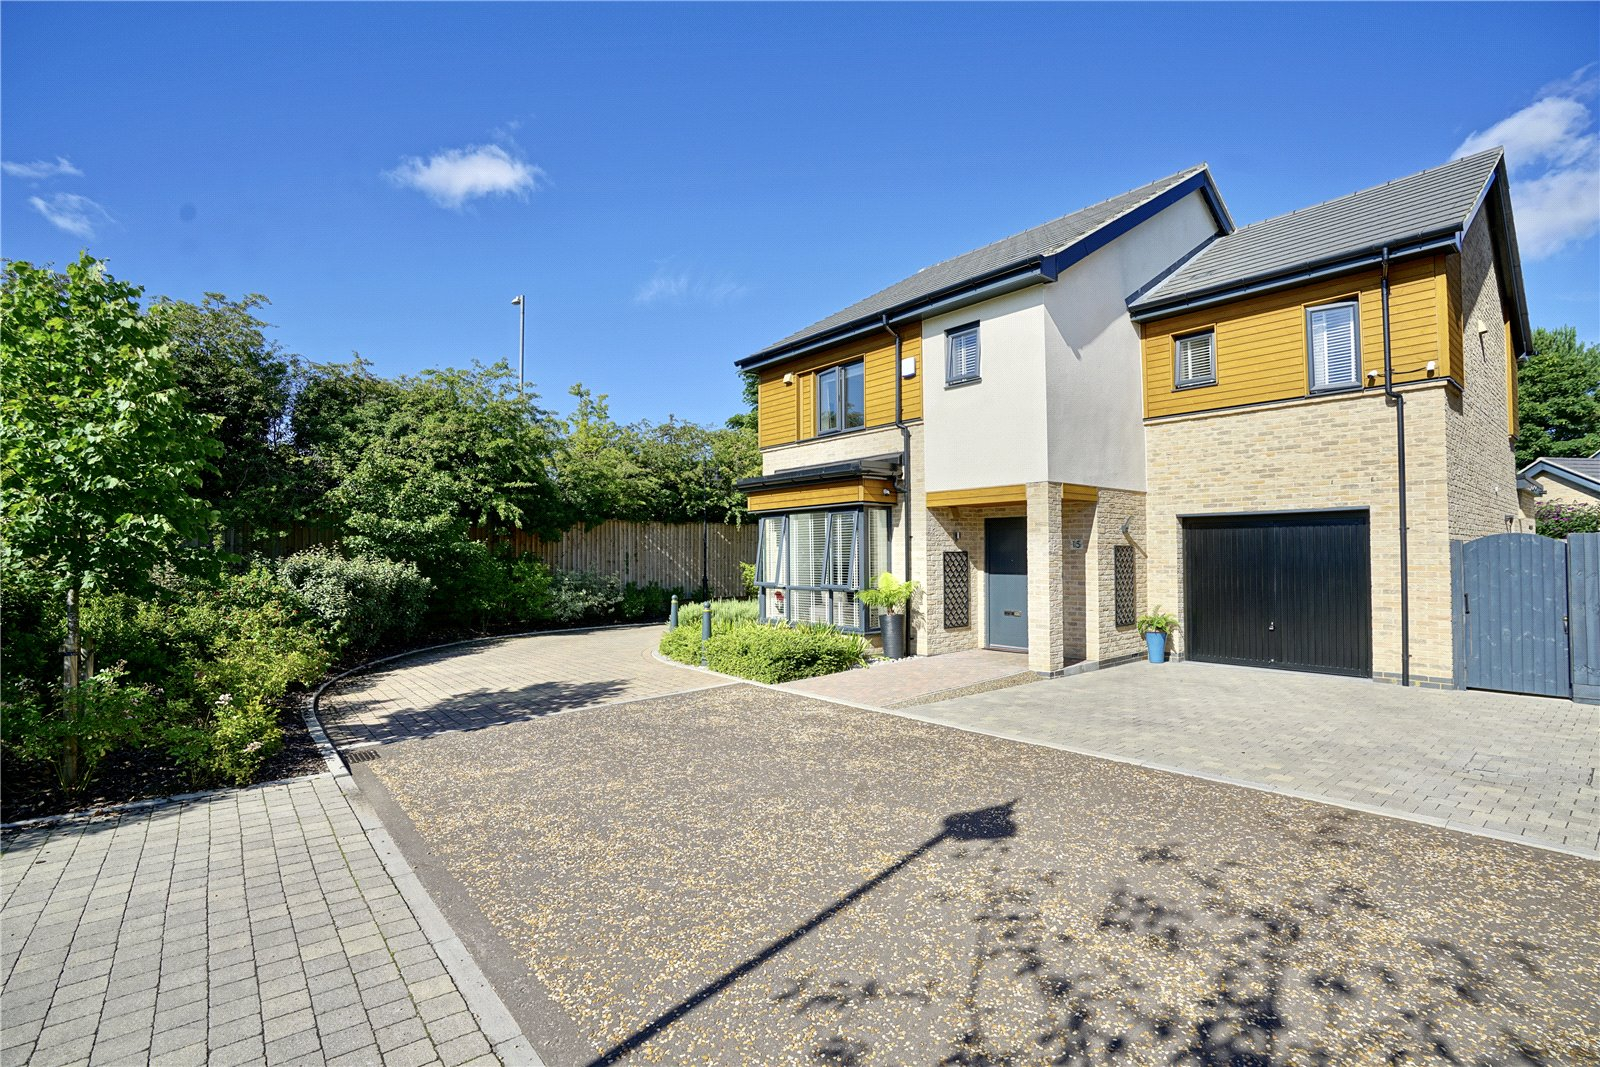 4 bed house for sale in Eaton Close, Eaton Ford  - Property Image 4